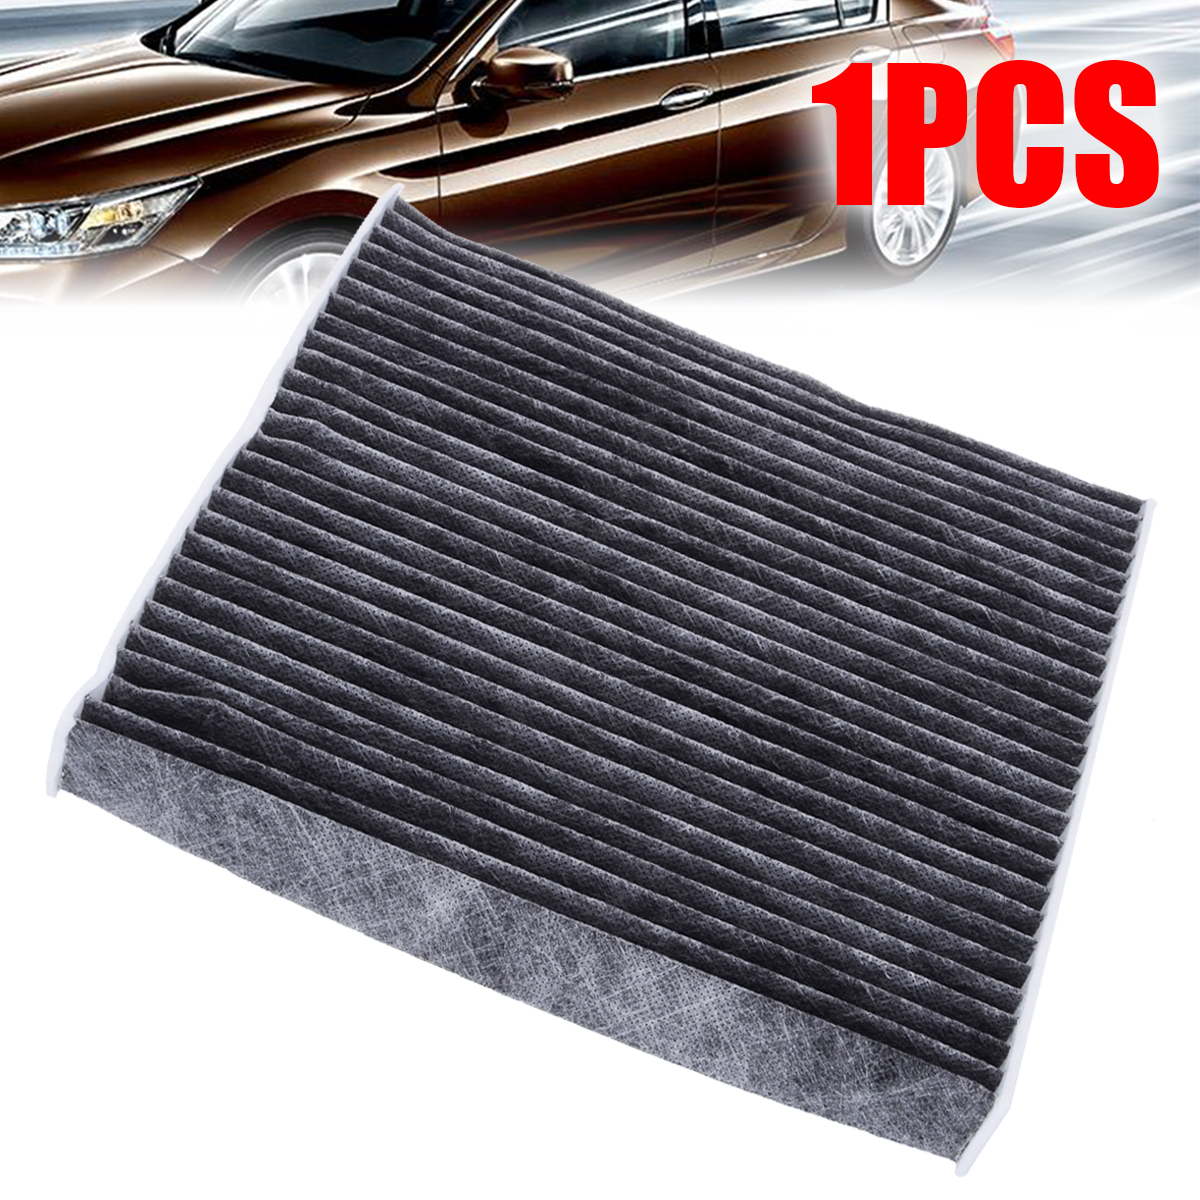 1pc Cabin Fiber Air Filter Non-woven 80292-TZ5-A41 For Honda Accord Civic CRV Odyssey Pilot